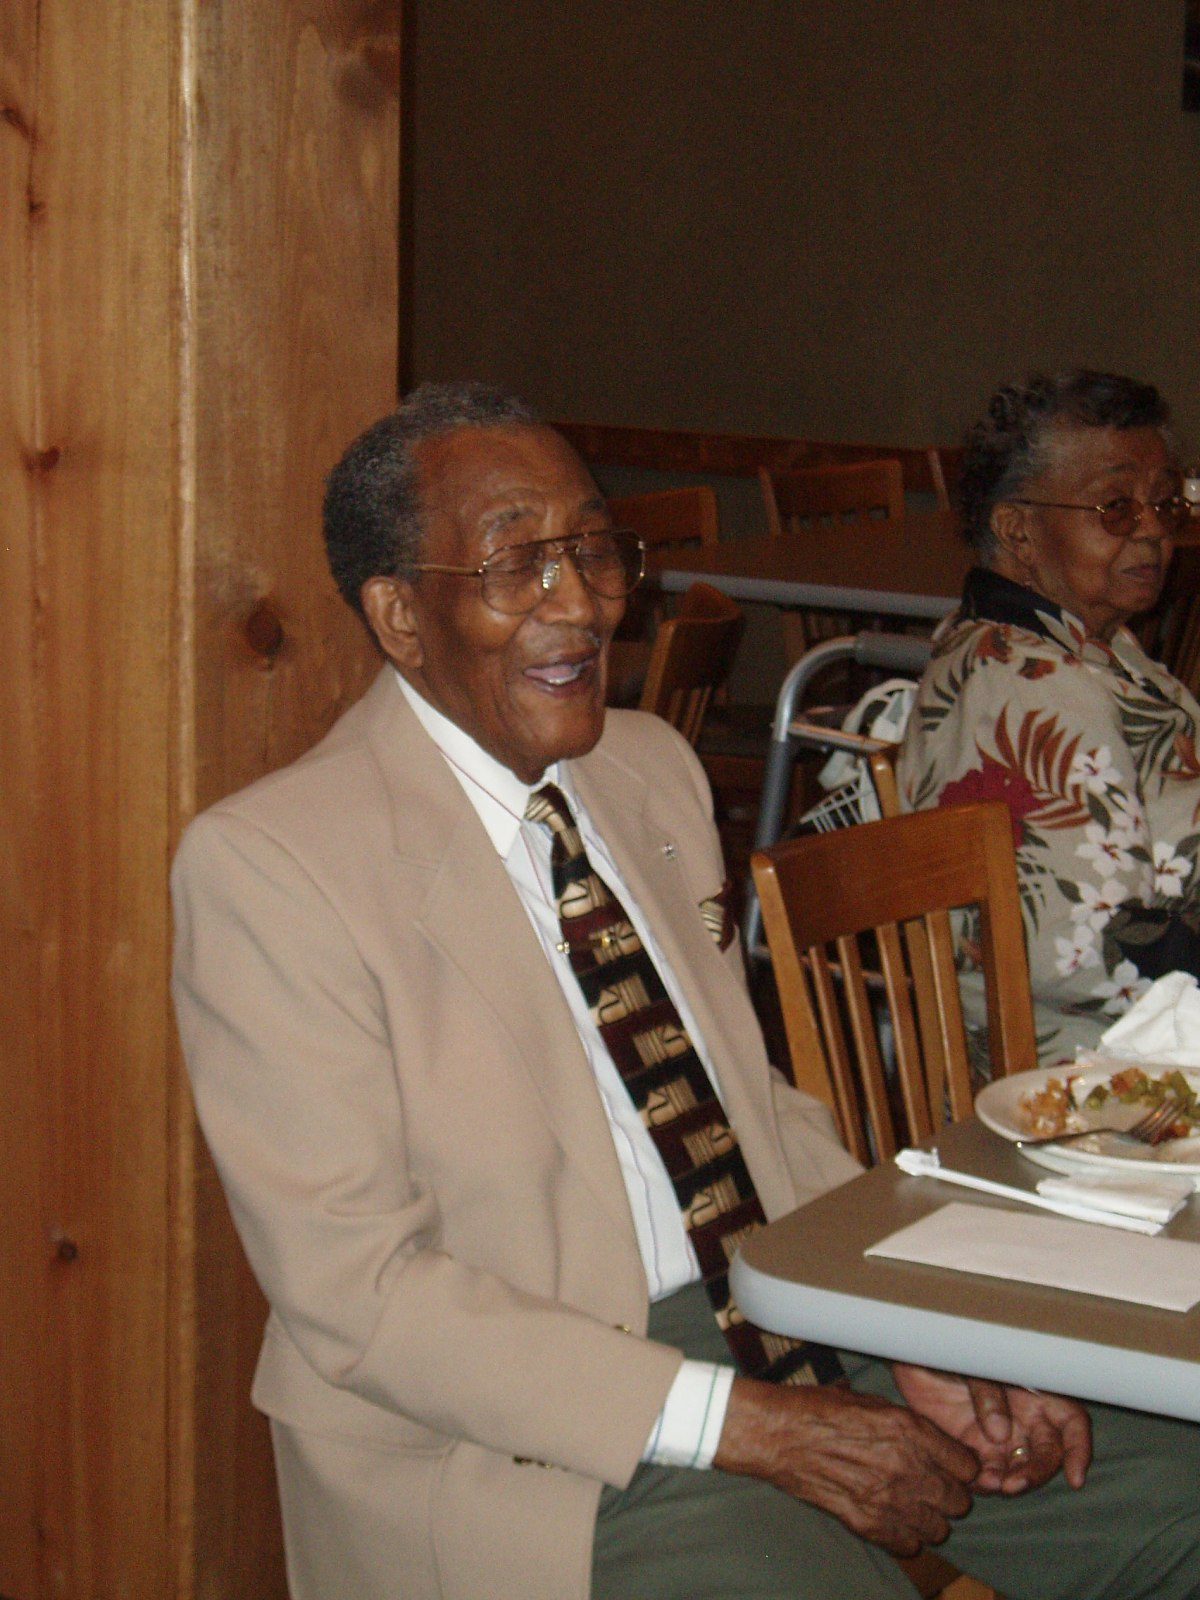 Rev. Ralph Edwards 1916 – 2013 ,Gone but not forgotten.